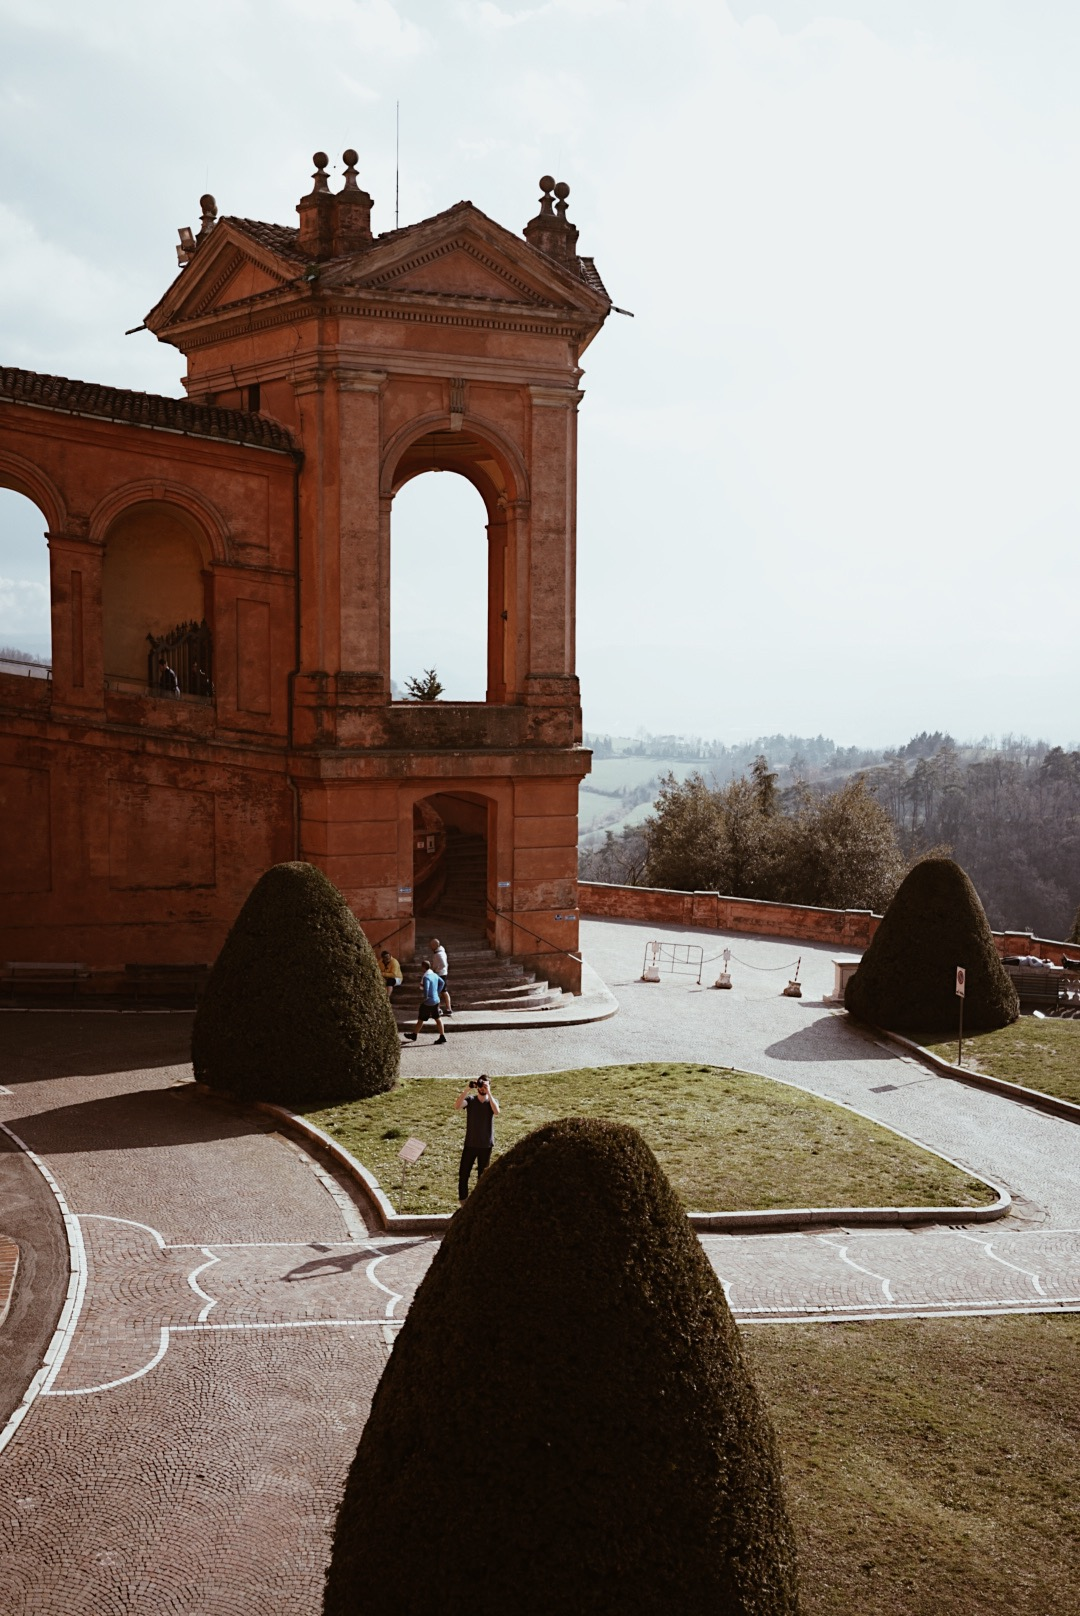 The Sanctuary of Madonna di San Luca